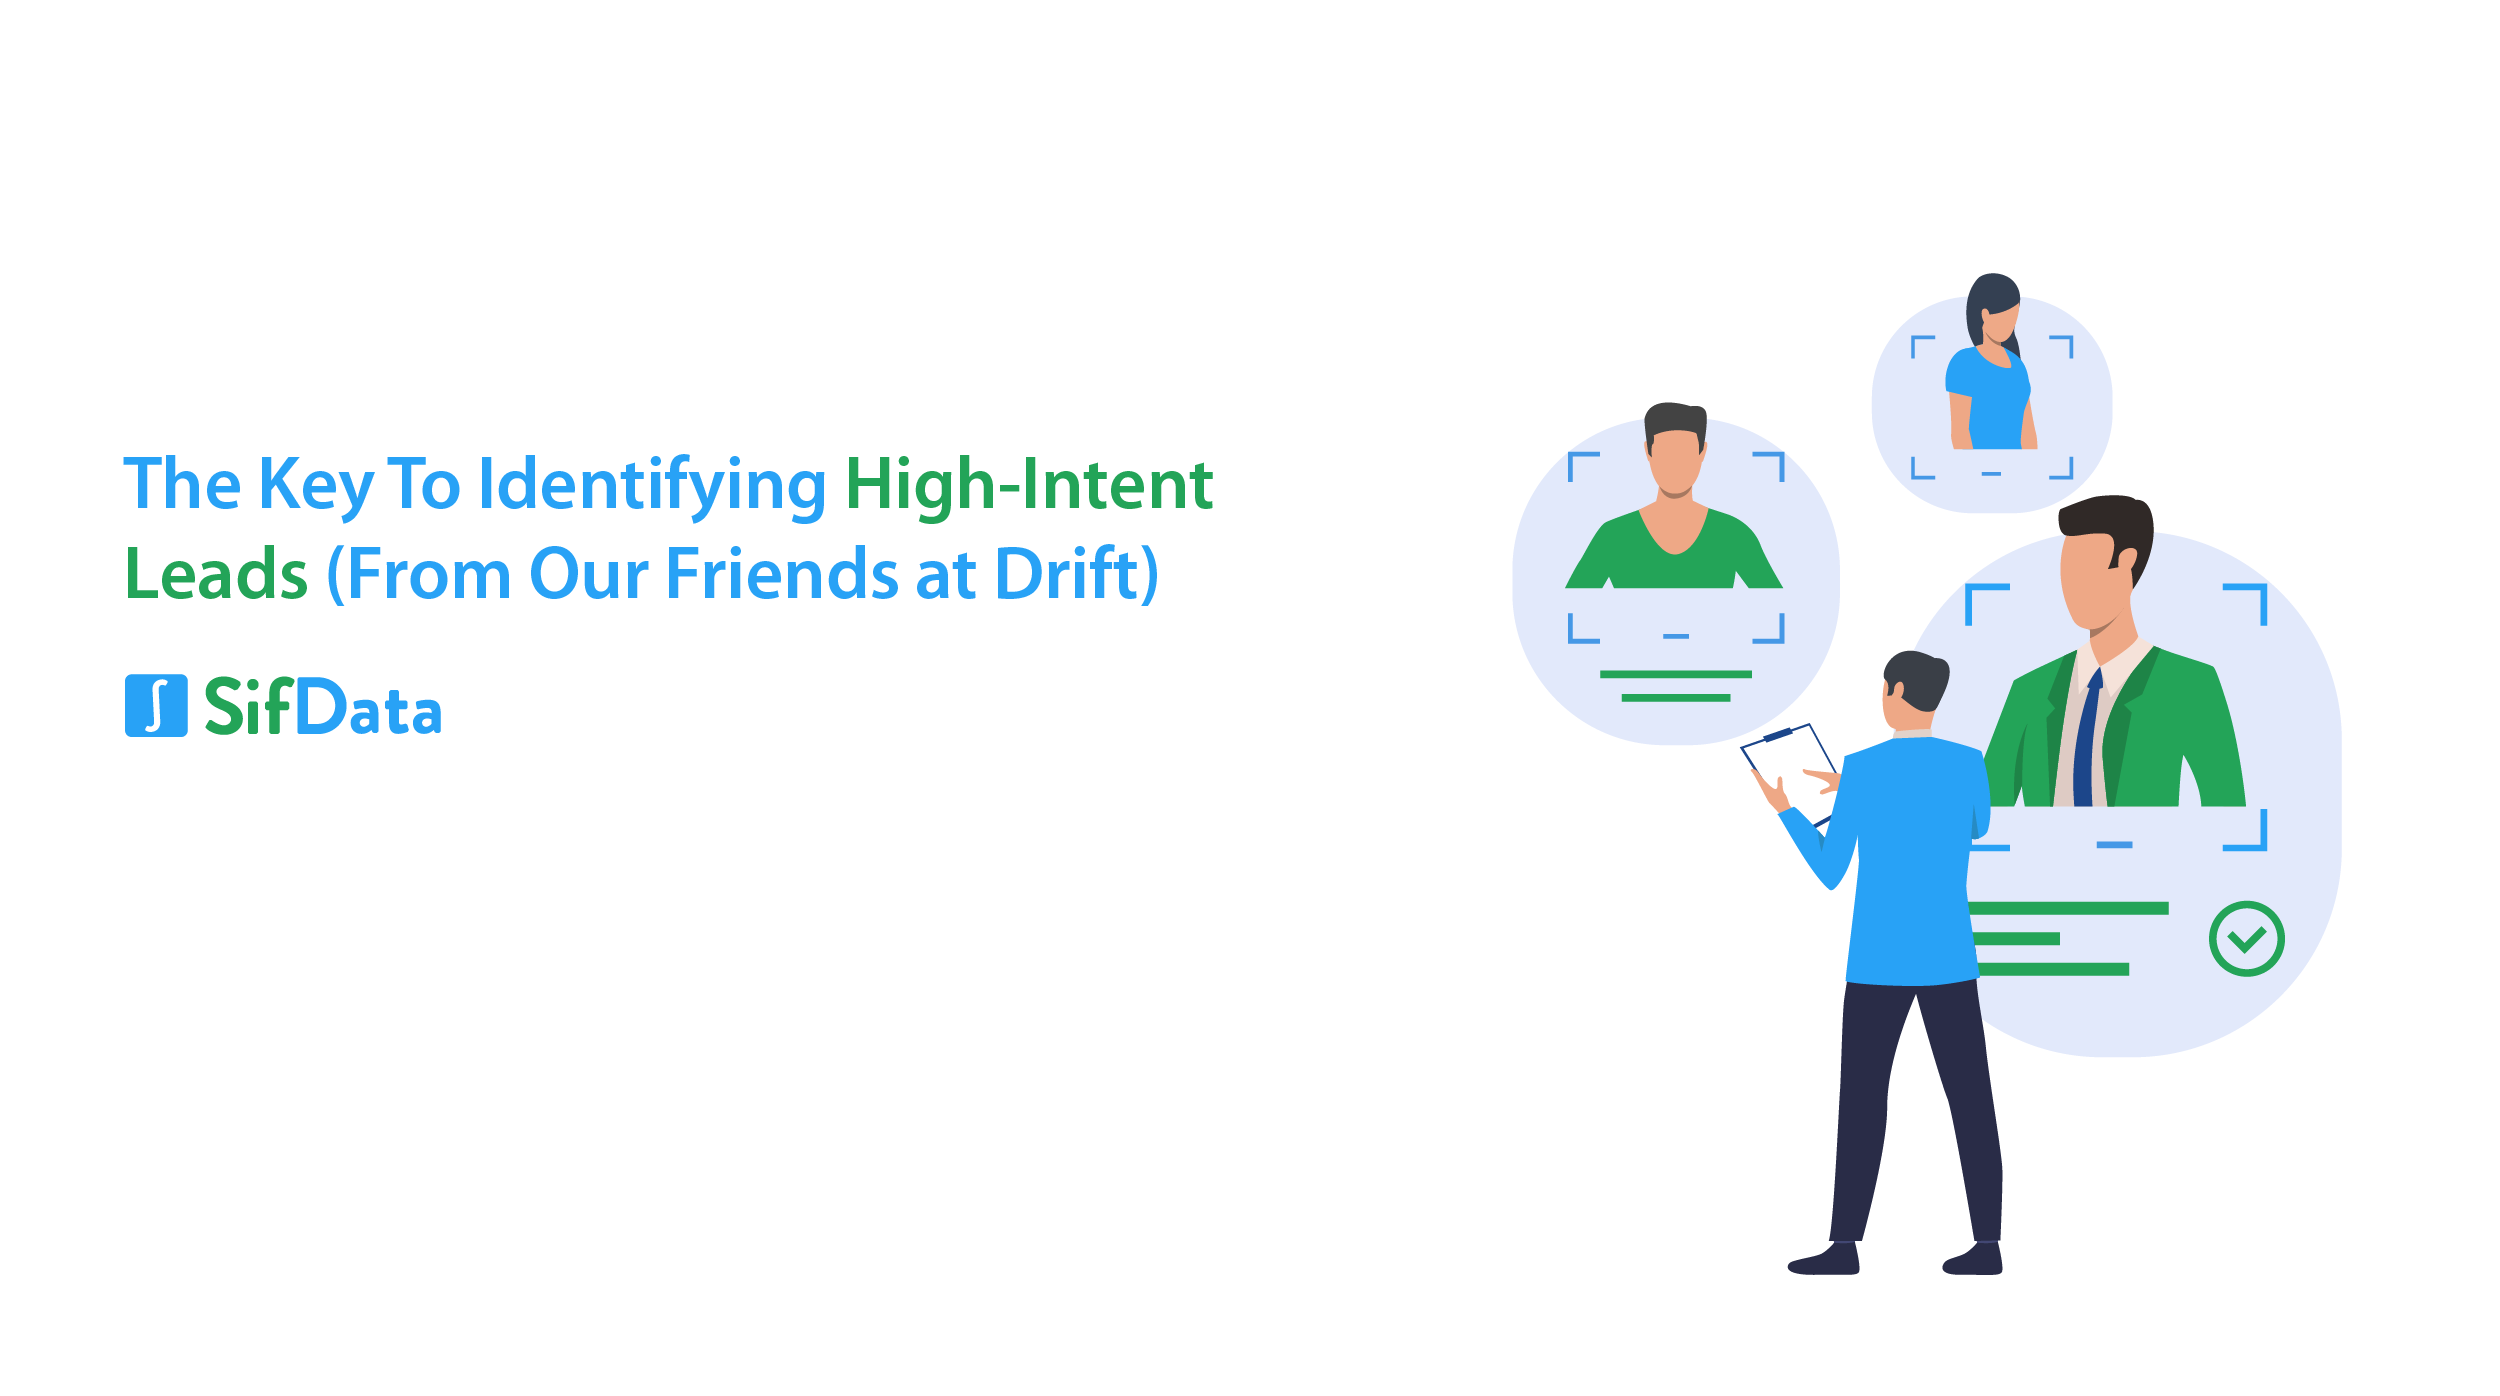 THE KEY TO IDENTIFYING HIGH-INTENT LEADS (FROM OUR FRIENDS AT DRIFT)